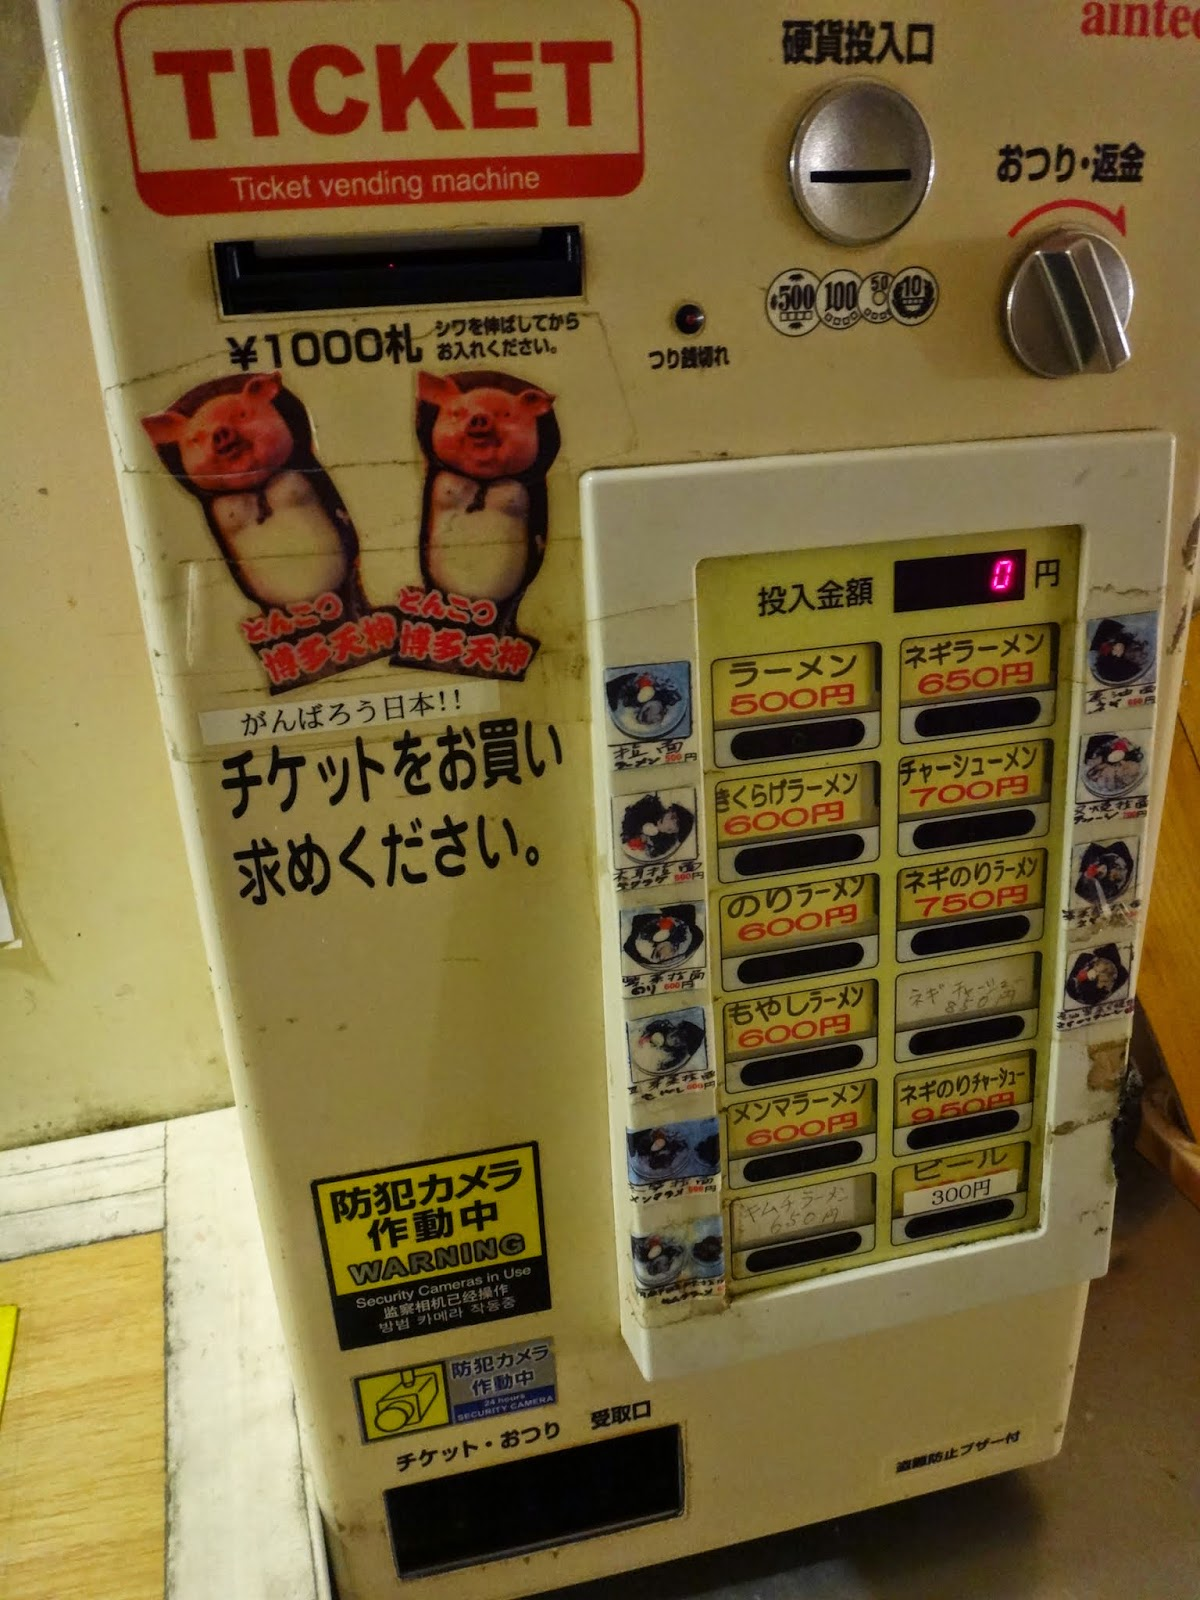 Ordering your Japanese meal by paying cash through vending machine which is located in front of the main entrance in Japan